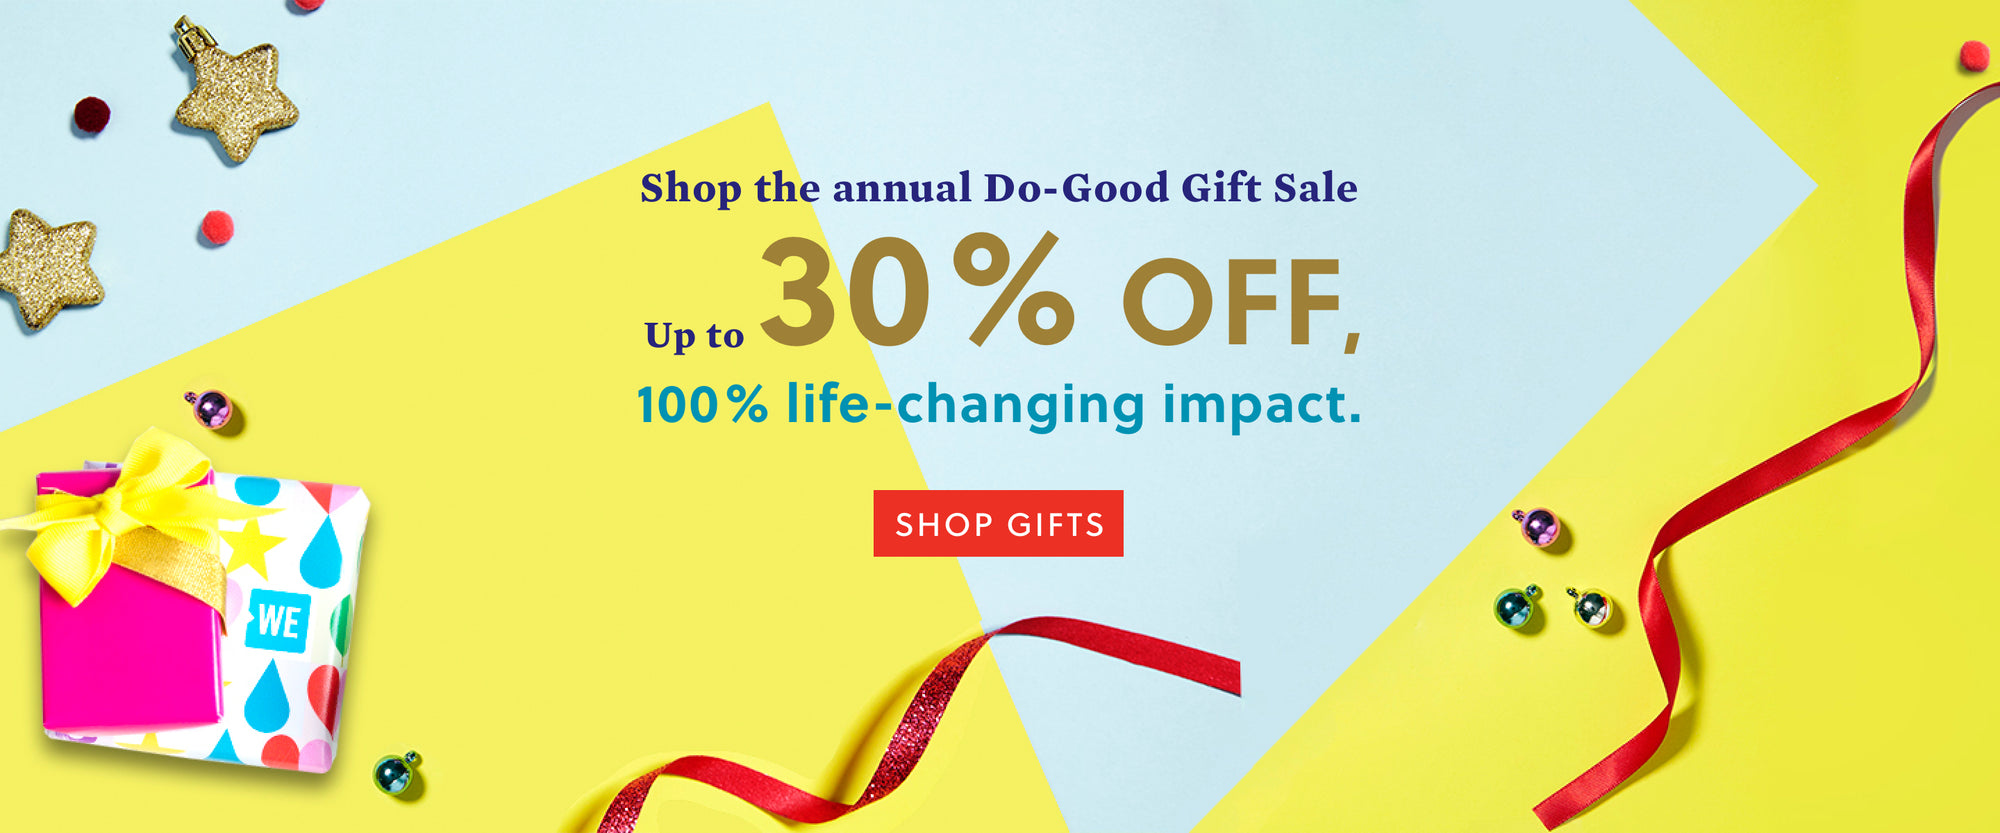 Shop the annual Do-Good Gift Sale Up to 30% OFF, 100% life changing impact. Shop Gifts